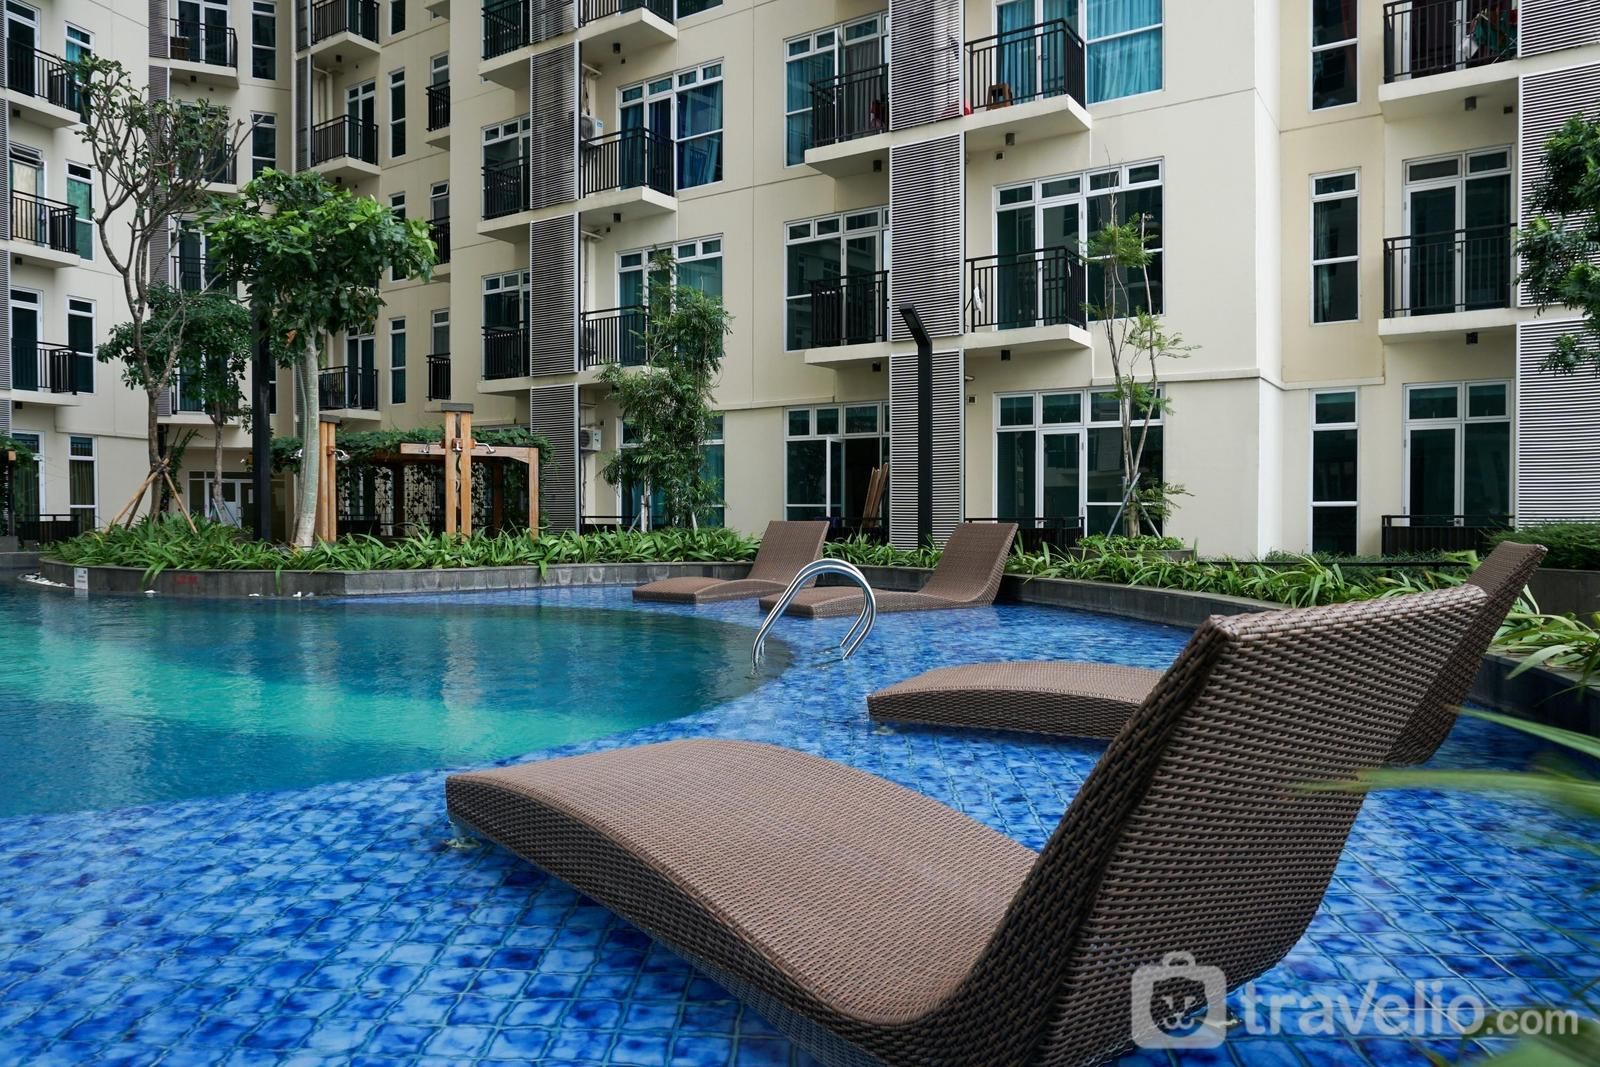 Apartemen Puri Orchard - Unfurnished 1BR 37th Floor Puri Orchard Apartment with AC By Travelio